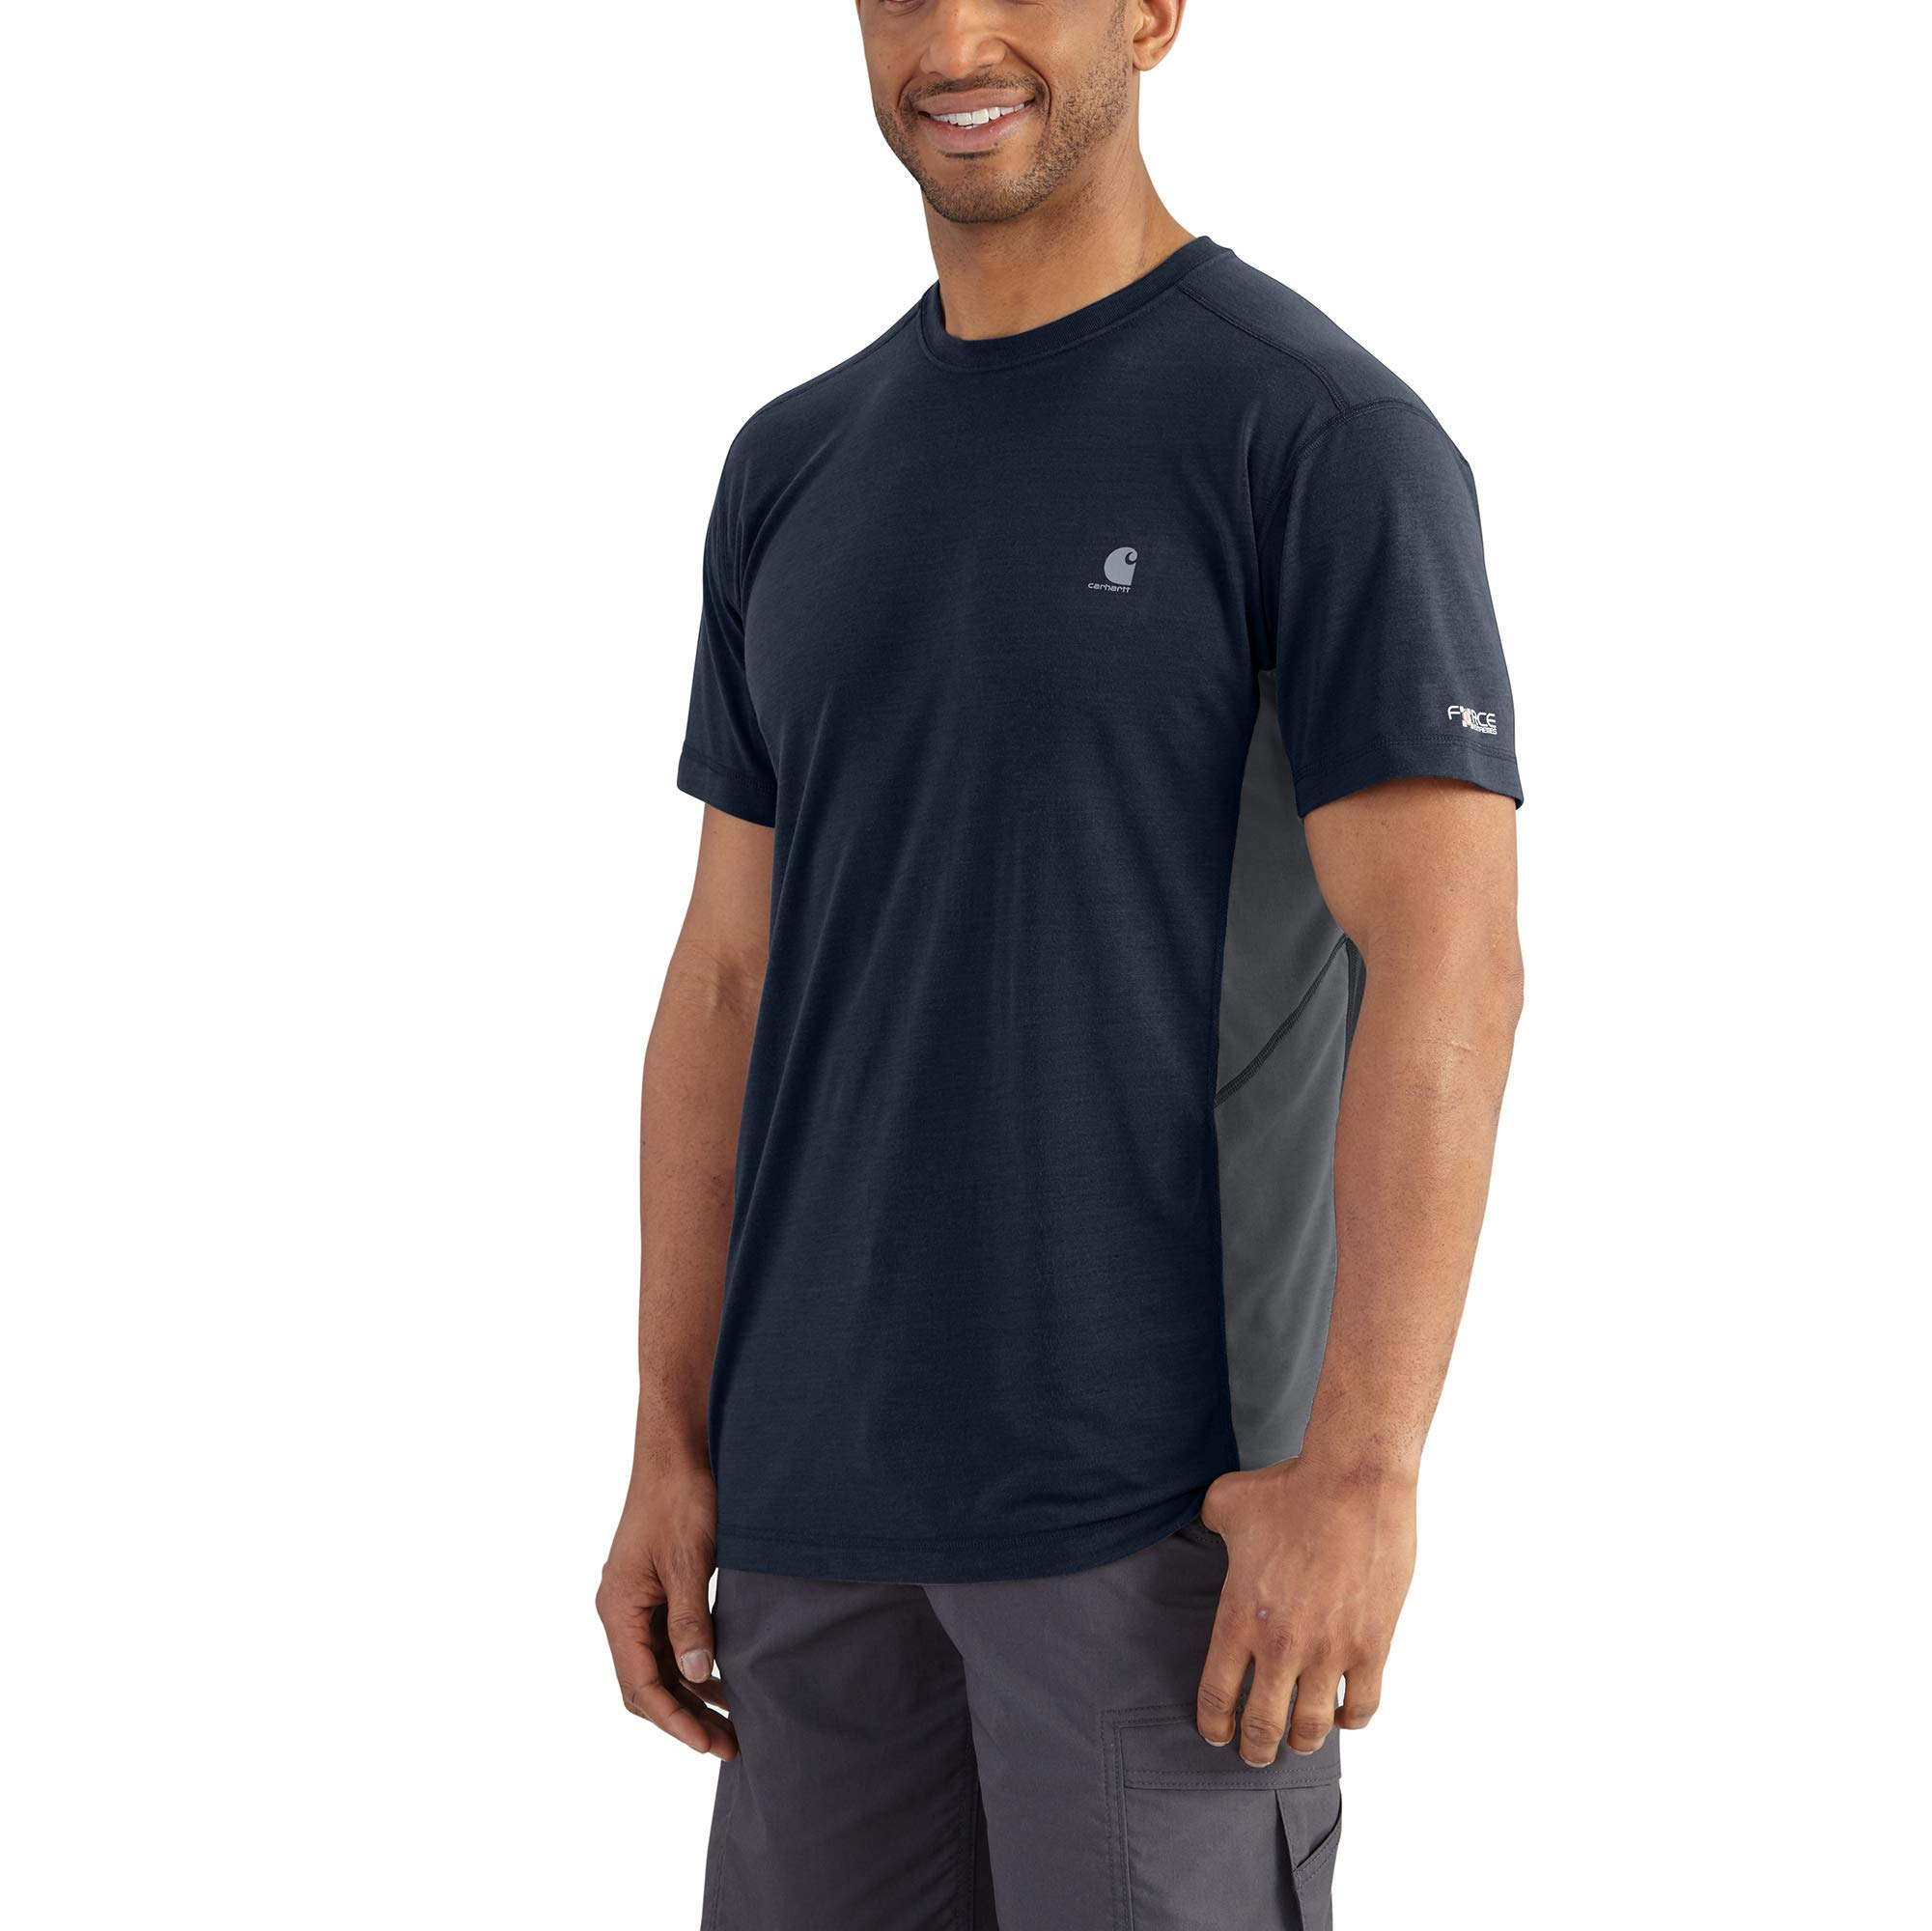 Carhartt Men's Force Extremes Short Sleeve T Shirt, Navy/Bluestone, X-Large